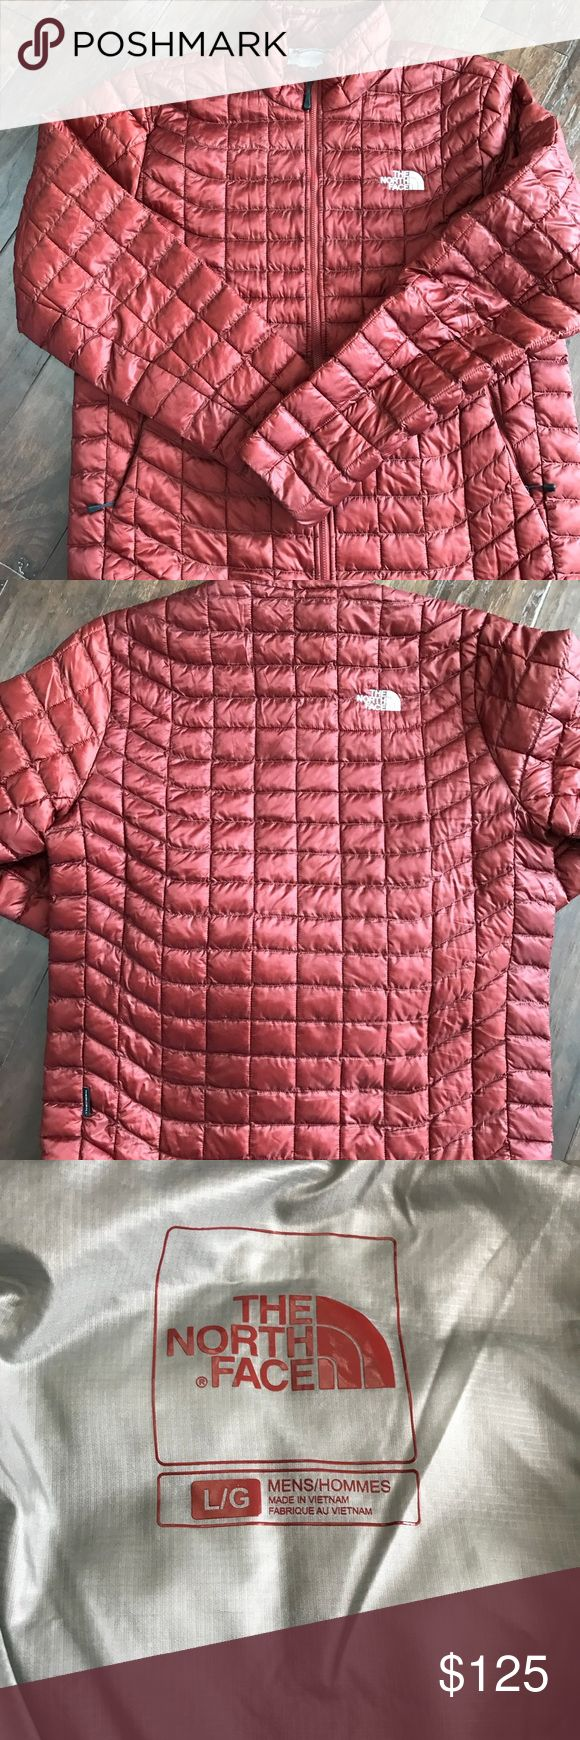 NWOT Men's North Face Thermoball Jacket Brand new without tags. Took the tags off and decided to not keep it.   Burgundy color. Size large   Smoke free home The North Face Jackets & Coats Puffers